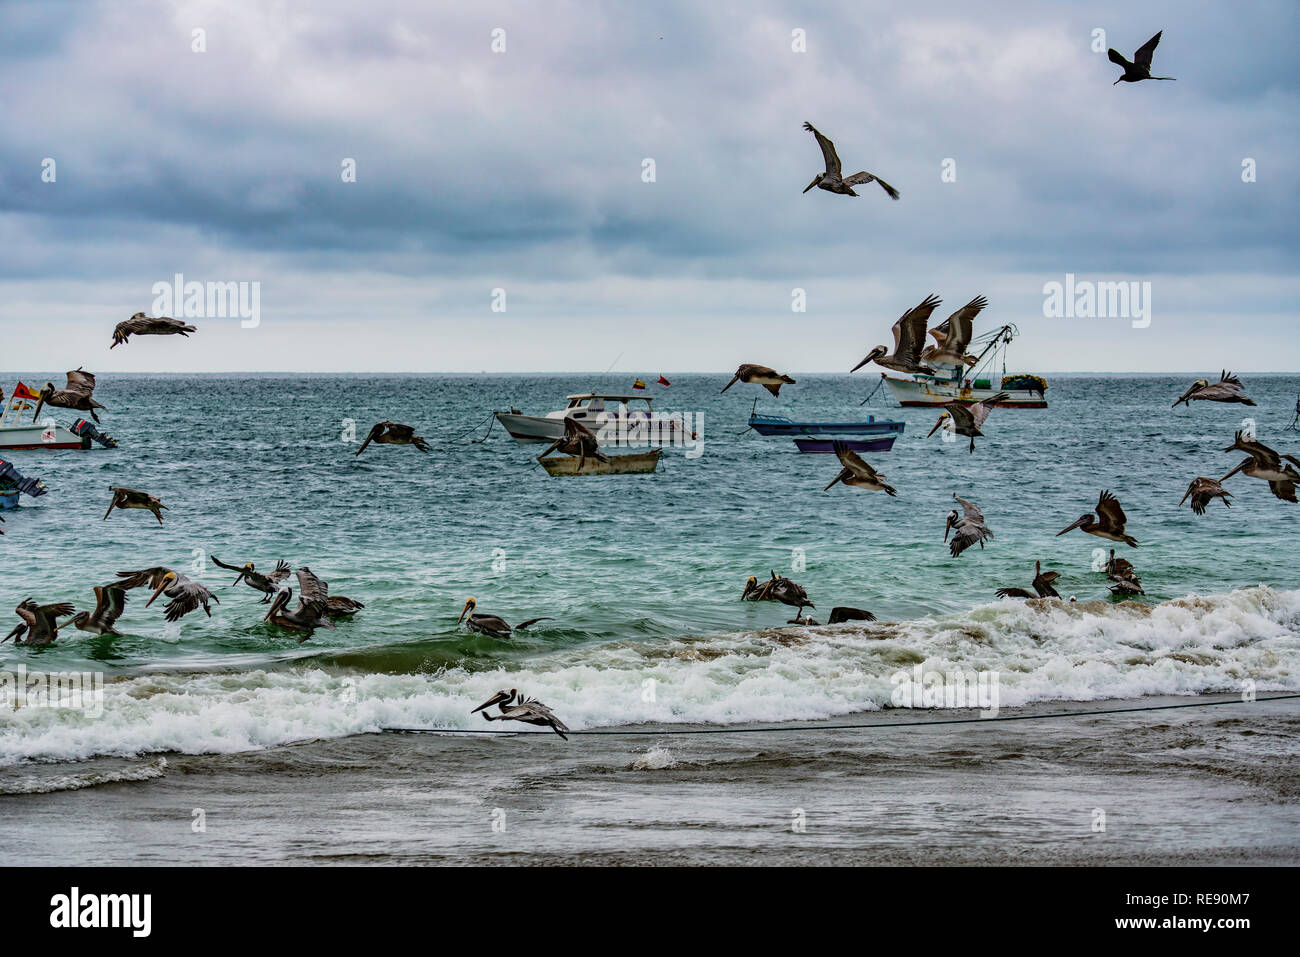 Puerto Lopez, Ecuador - September 12, 2018 - pelicans and frigate birds swarm over fishing boats dumping ofal at the end of a day - Stock Image